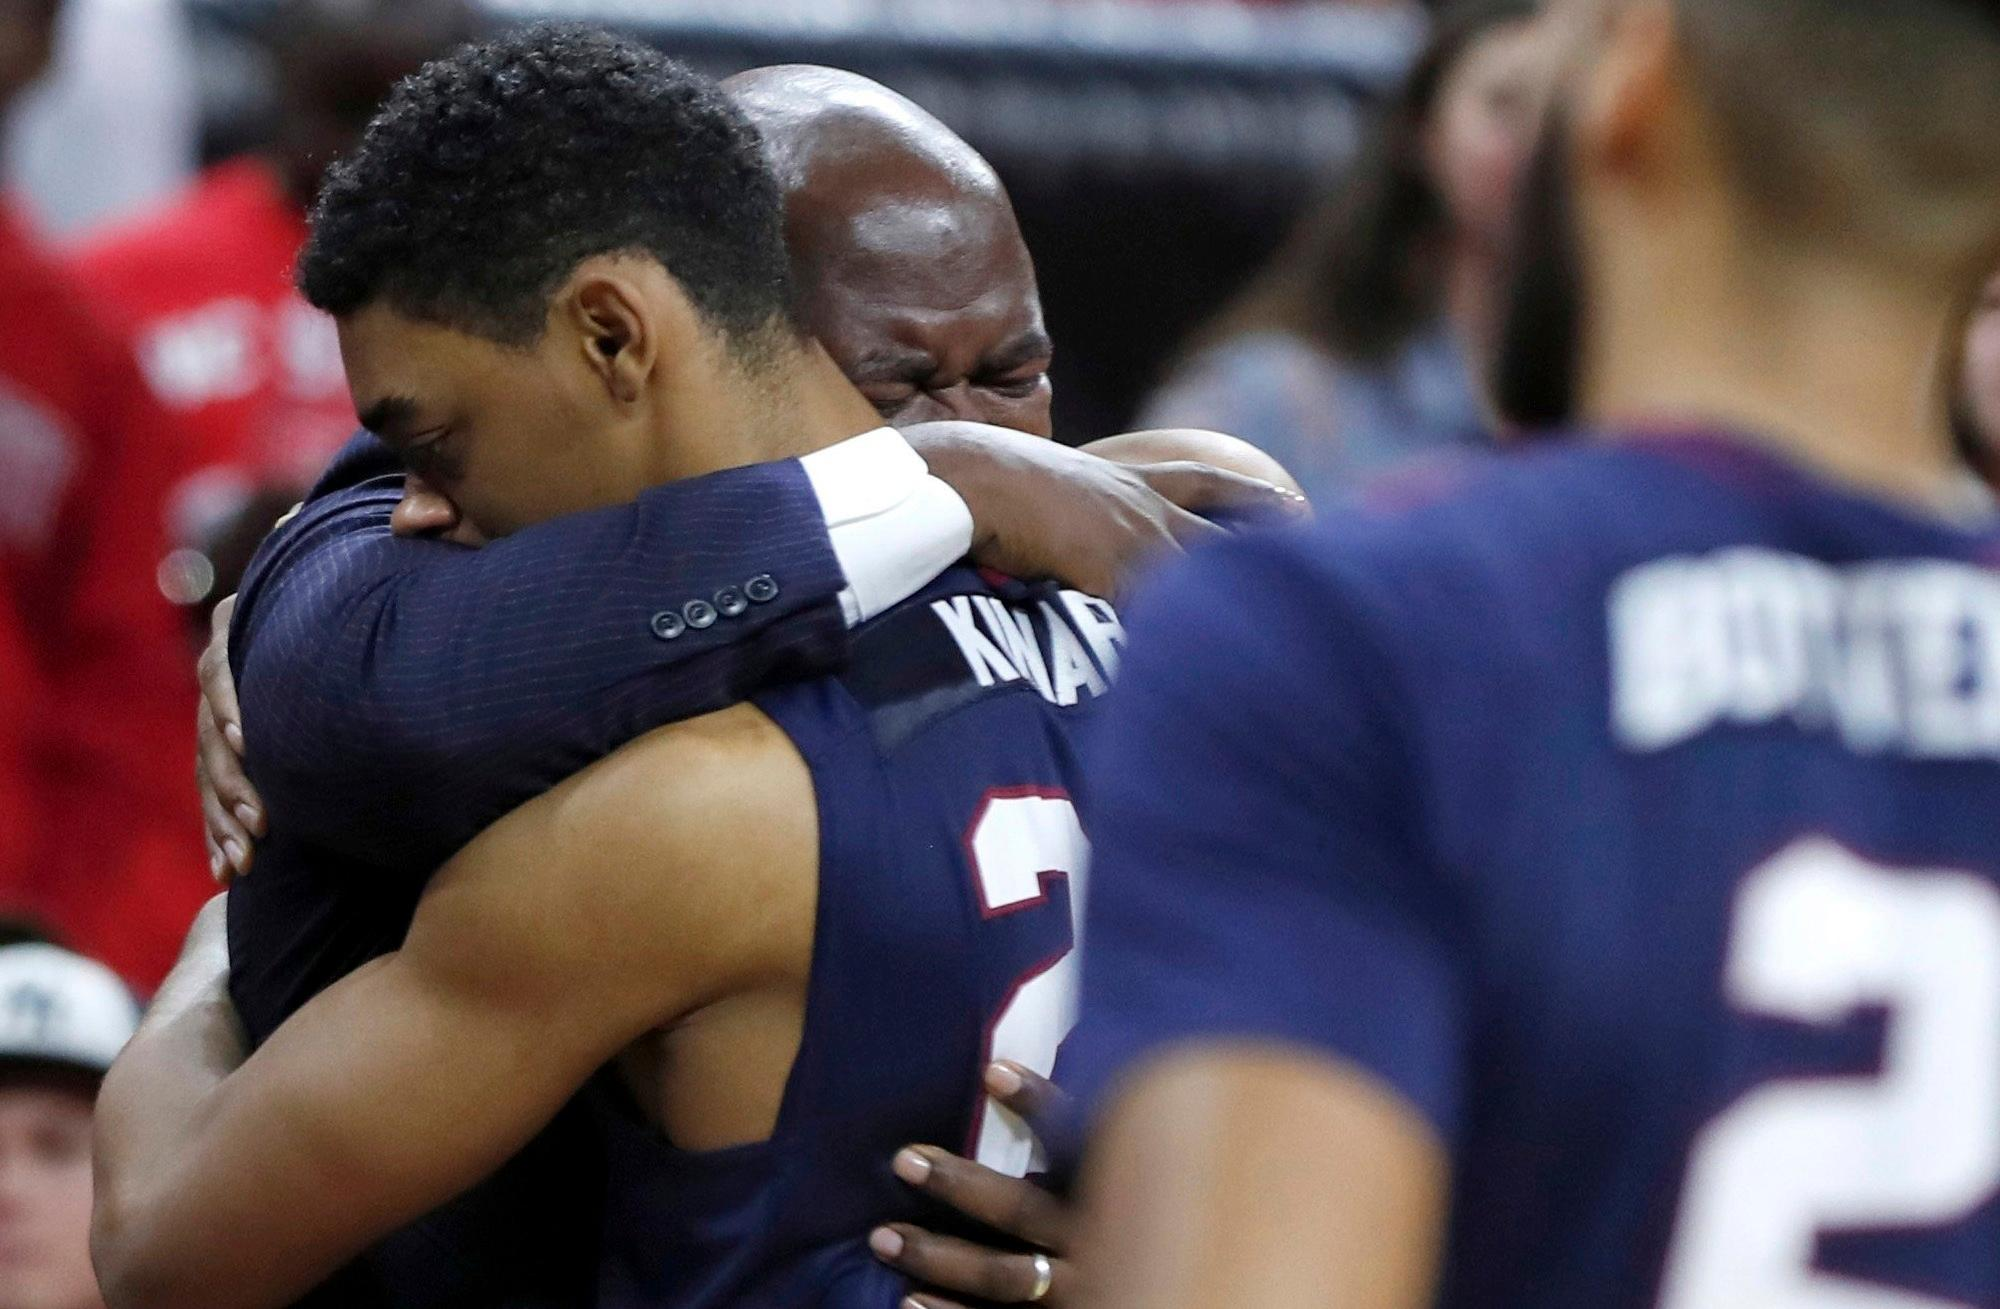 South Carolina State head coach Murray Garvin hugs Ian Kinard (24) as Tyvoris Solomon is attended to after he was injured during the first half of an NCAA college basketball game against North Carolina State at PNC Arena in Raleigh, N.C., Saturday, Dec. 2, 2017.  (Ethan Hyman/The News & Observer via AP)